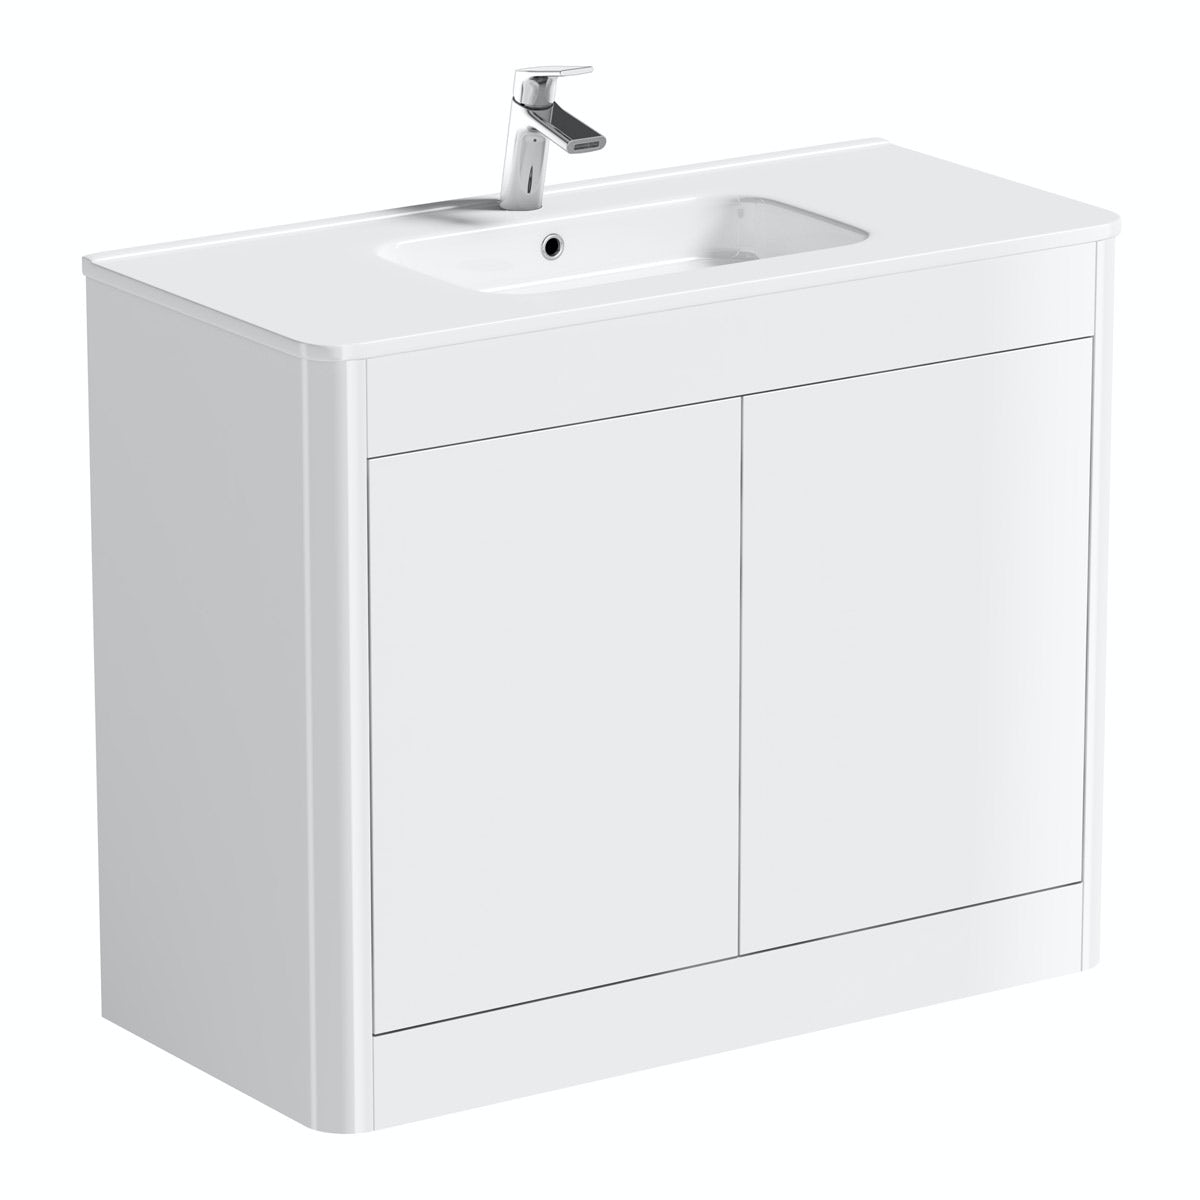 Mode Carter ice white floor mounted vanity unit and basin 1000mm